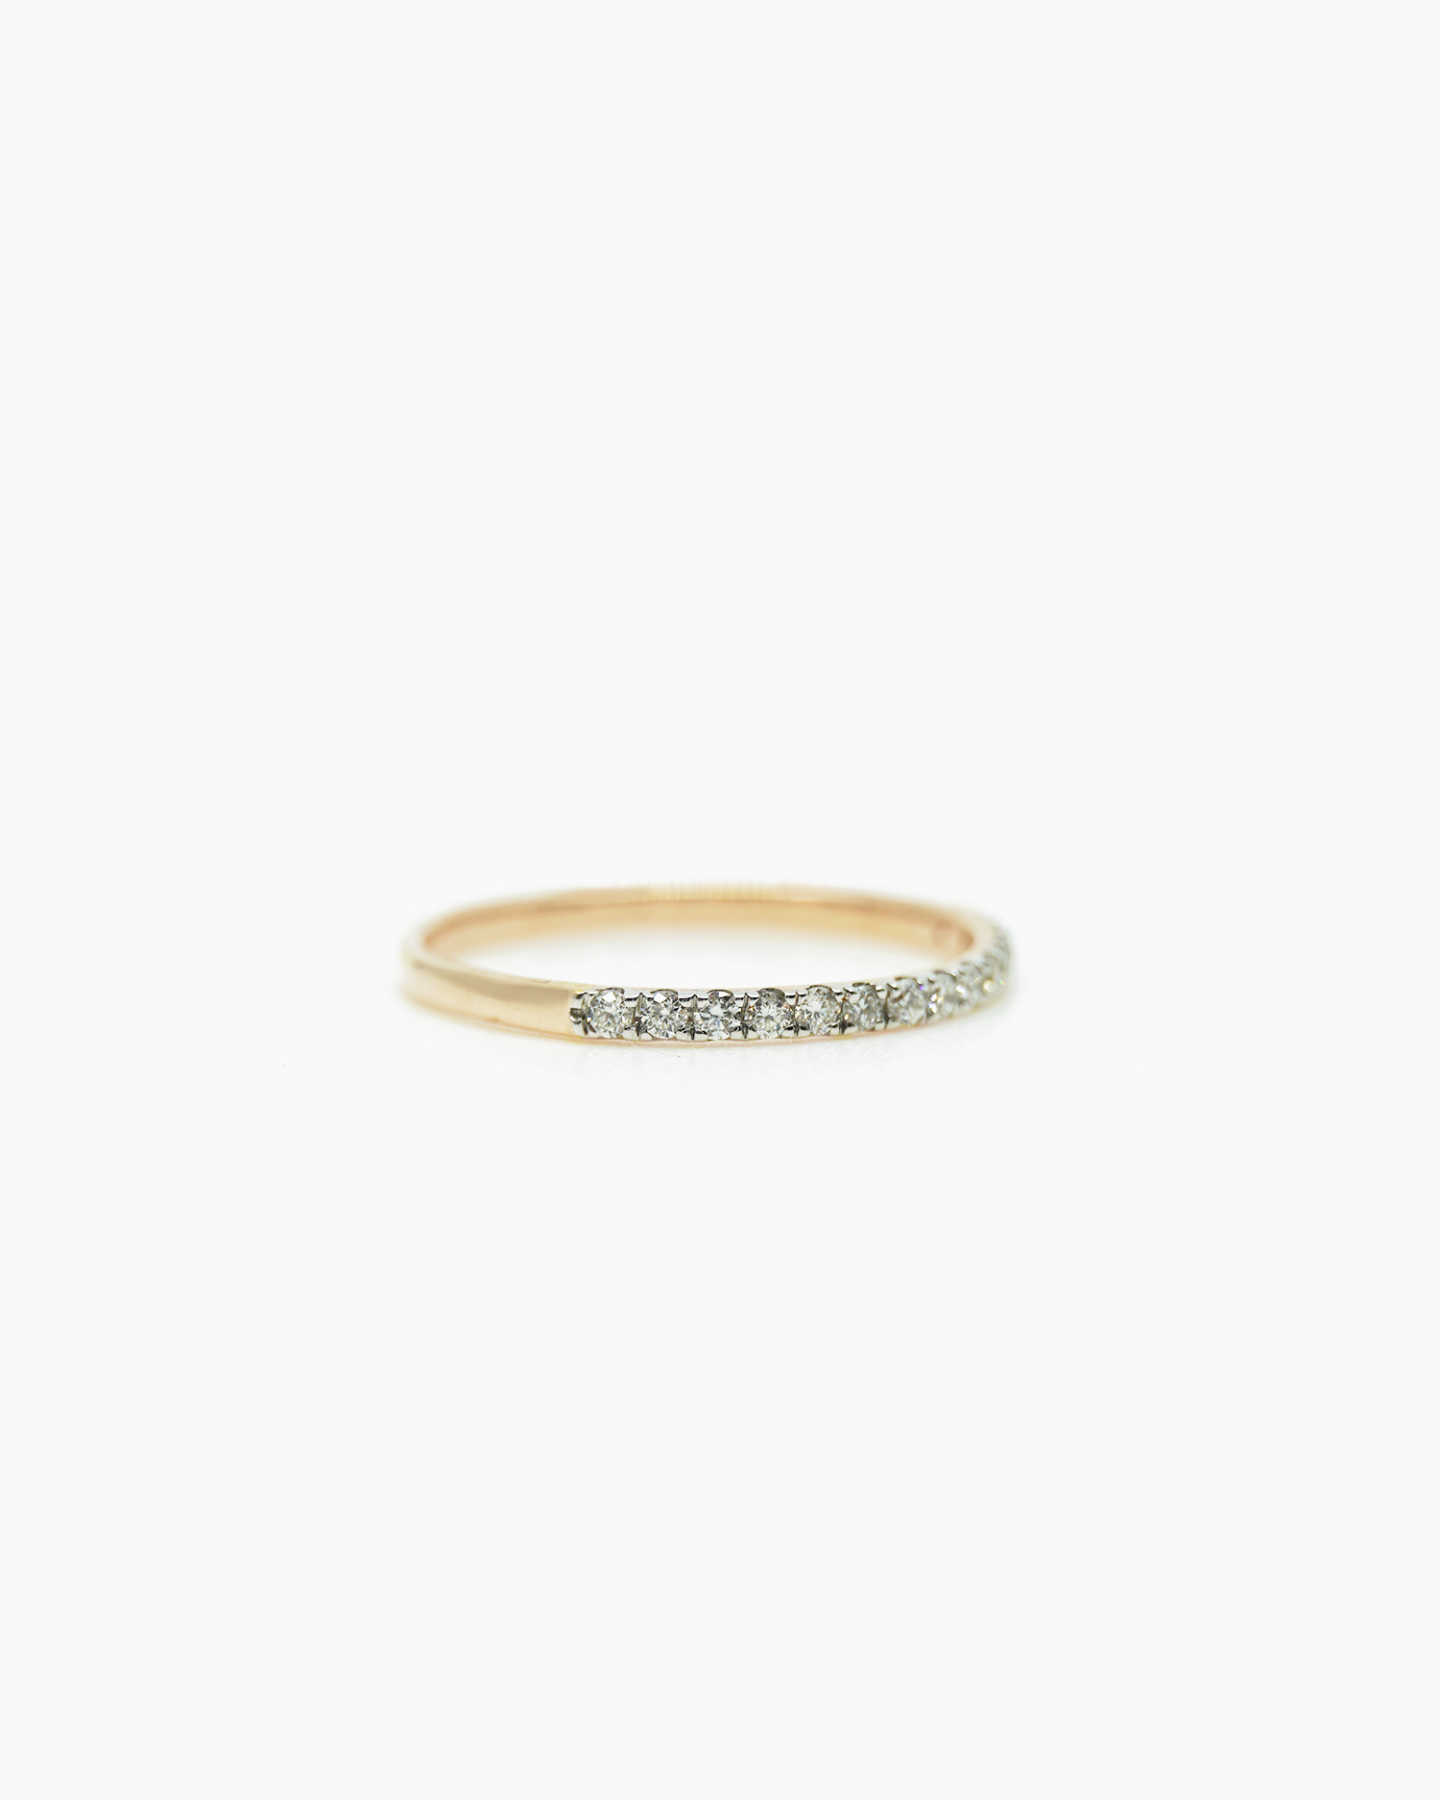 Diamond Wedding Band - undefined - 1